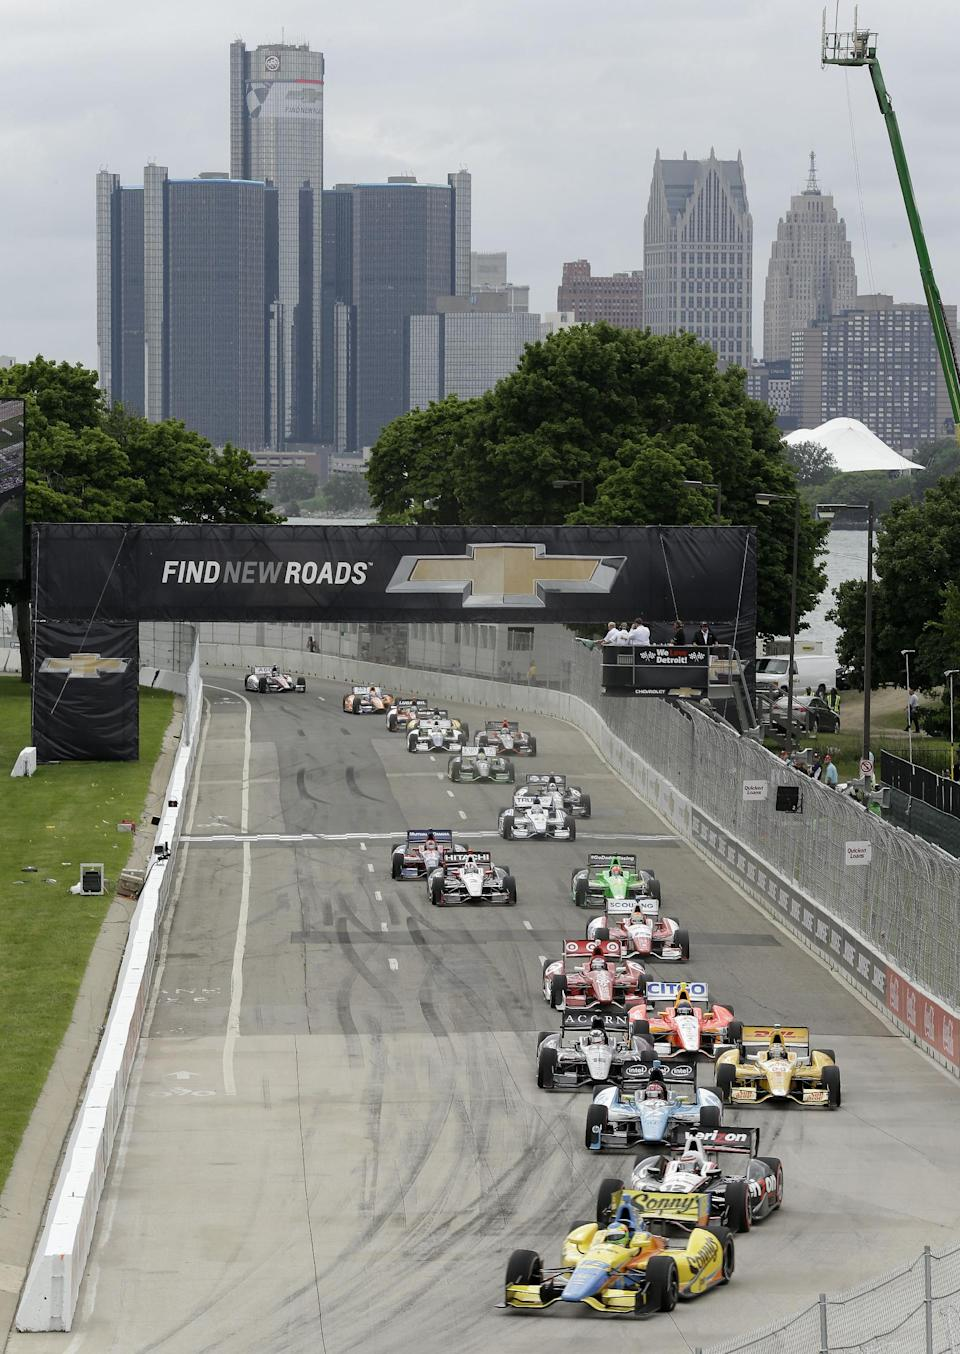 Mike Conway leads the field into turn one during the IndyCar Detroit Grand Prix auto race on Belle Isle in Detroit, Sunday, June 2, 2013. (AP Photo/Paul Sancya)